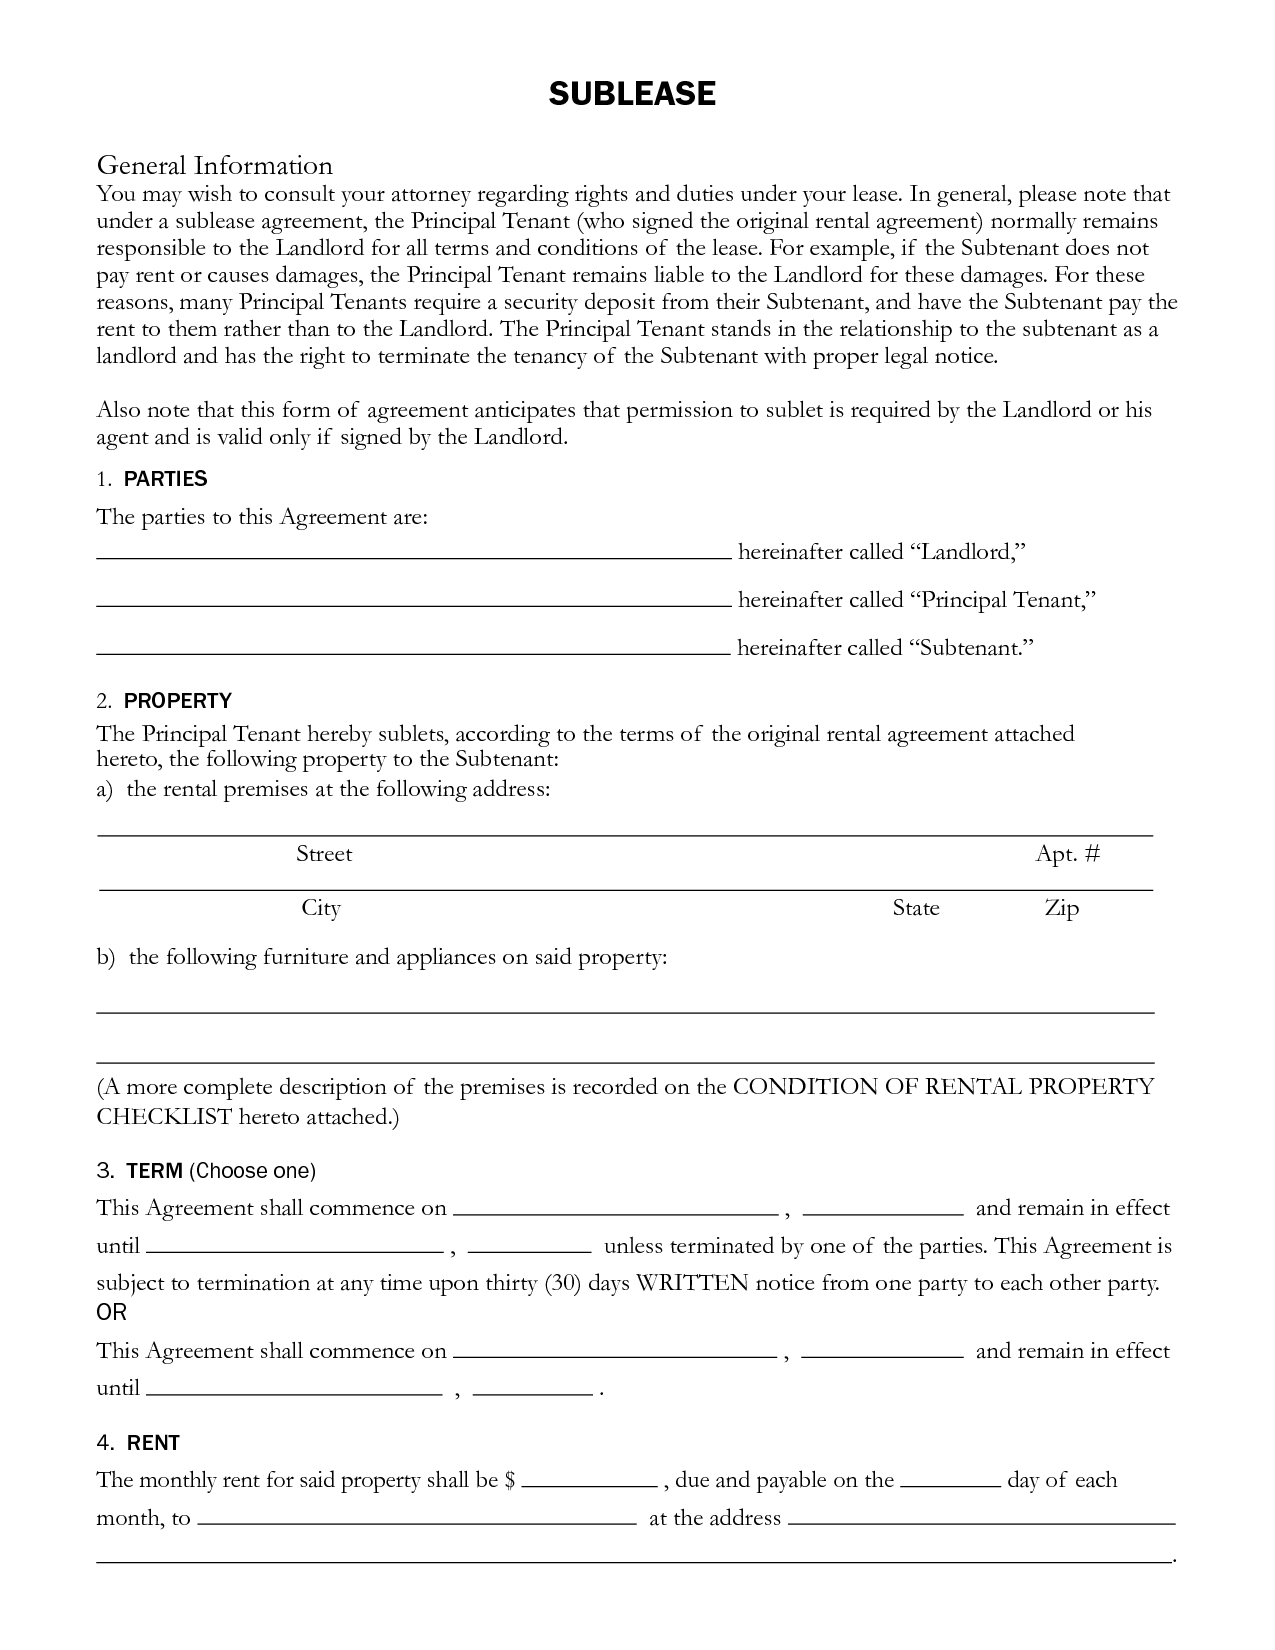 Sublet Rental Agreement SUBLEASE General Information by ayj58676 – Basic Sublet Agreement